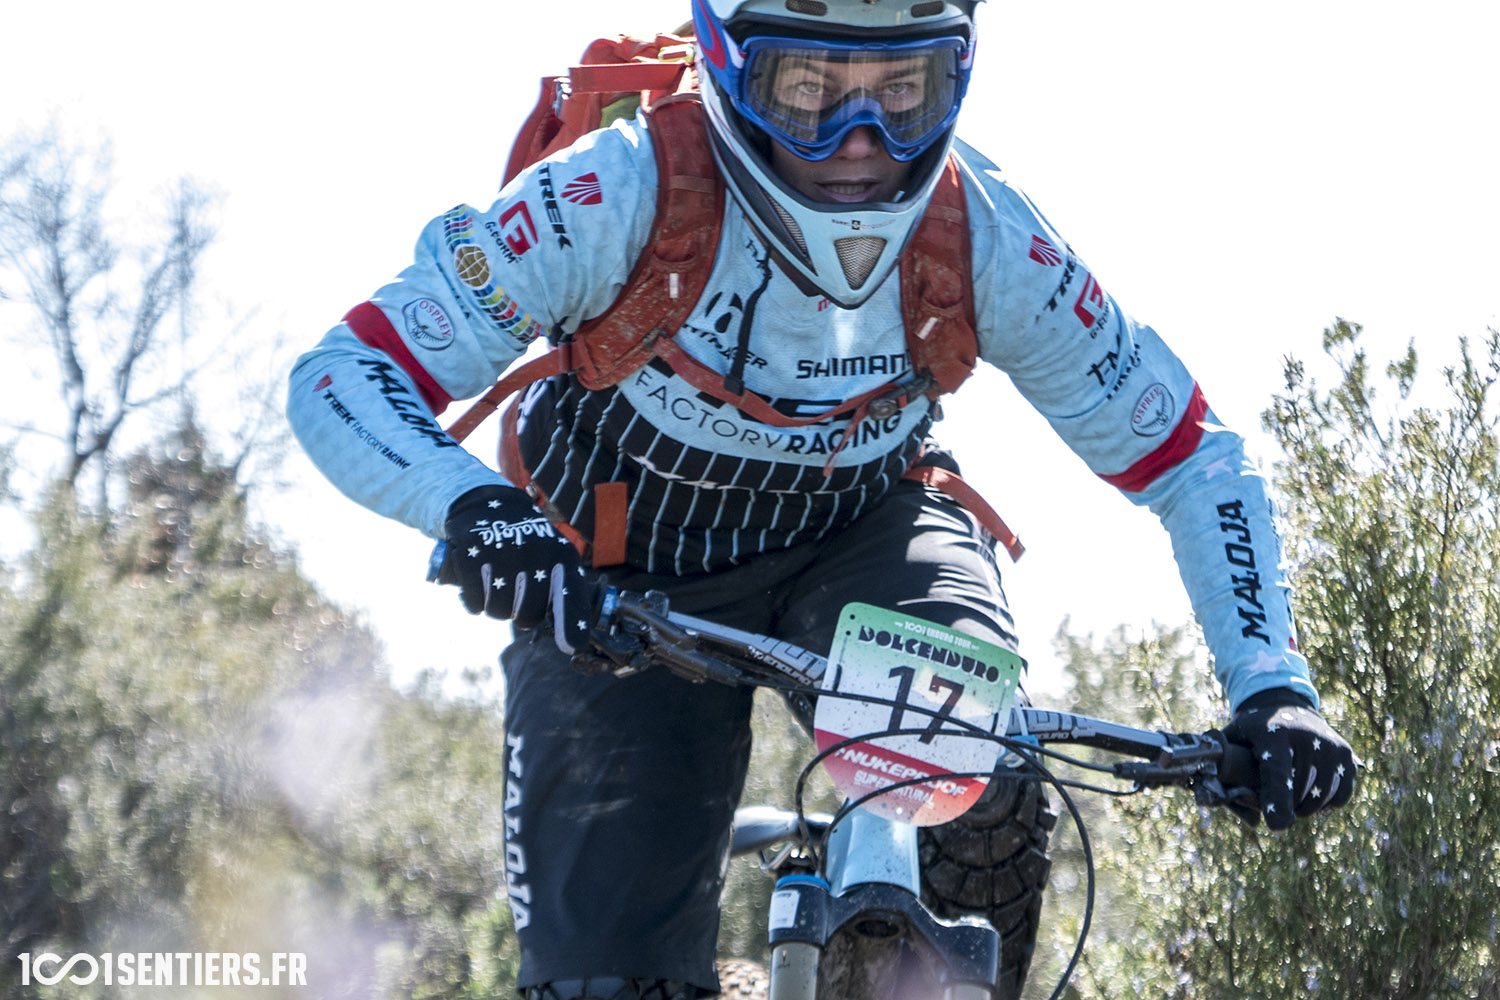 urge 1001 enduro tour dolcenduro 1001sentiers tracy moseley